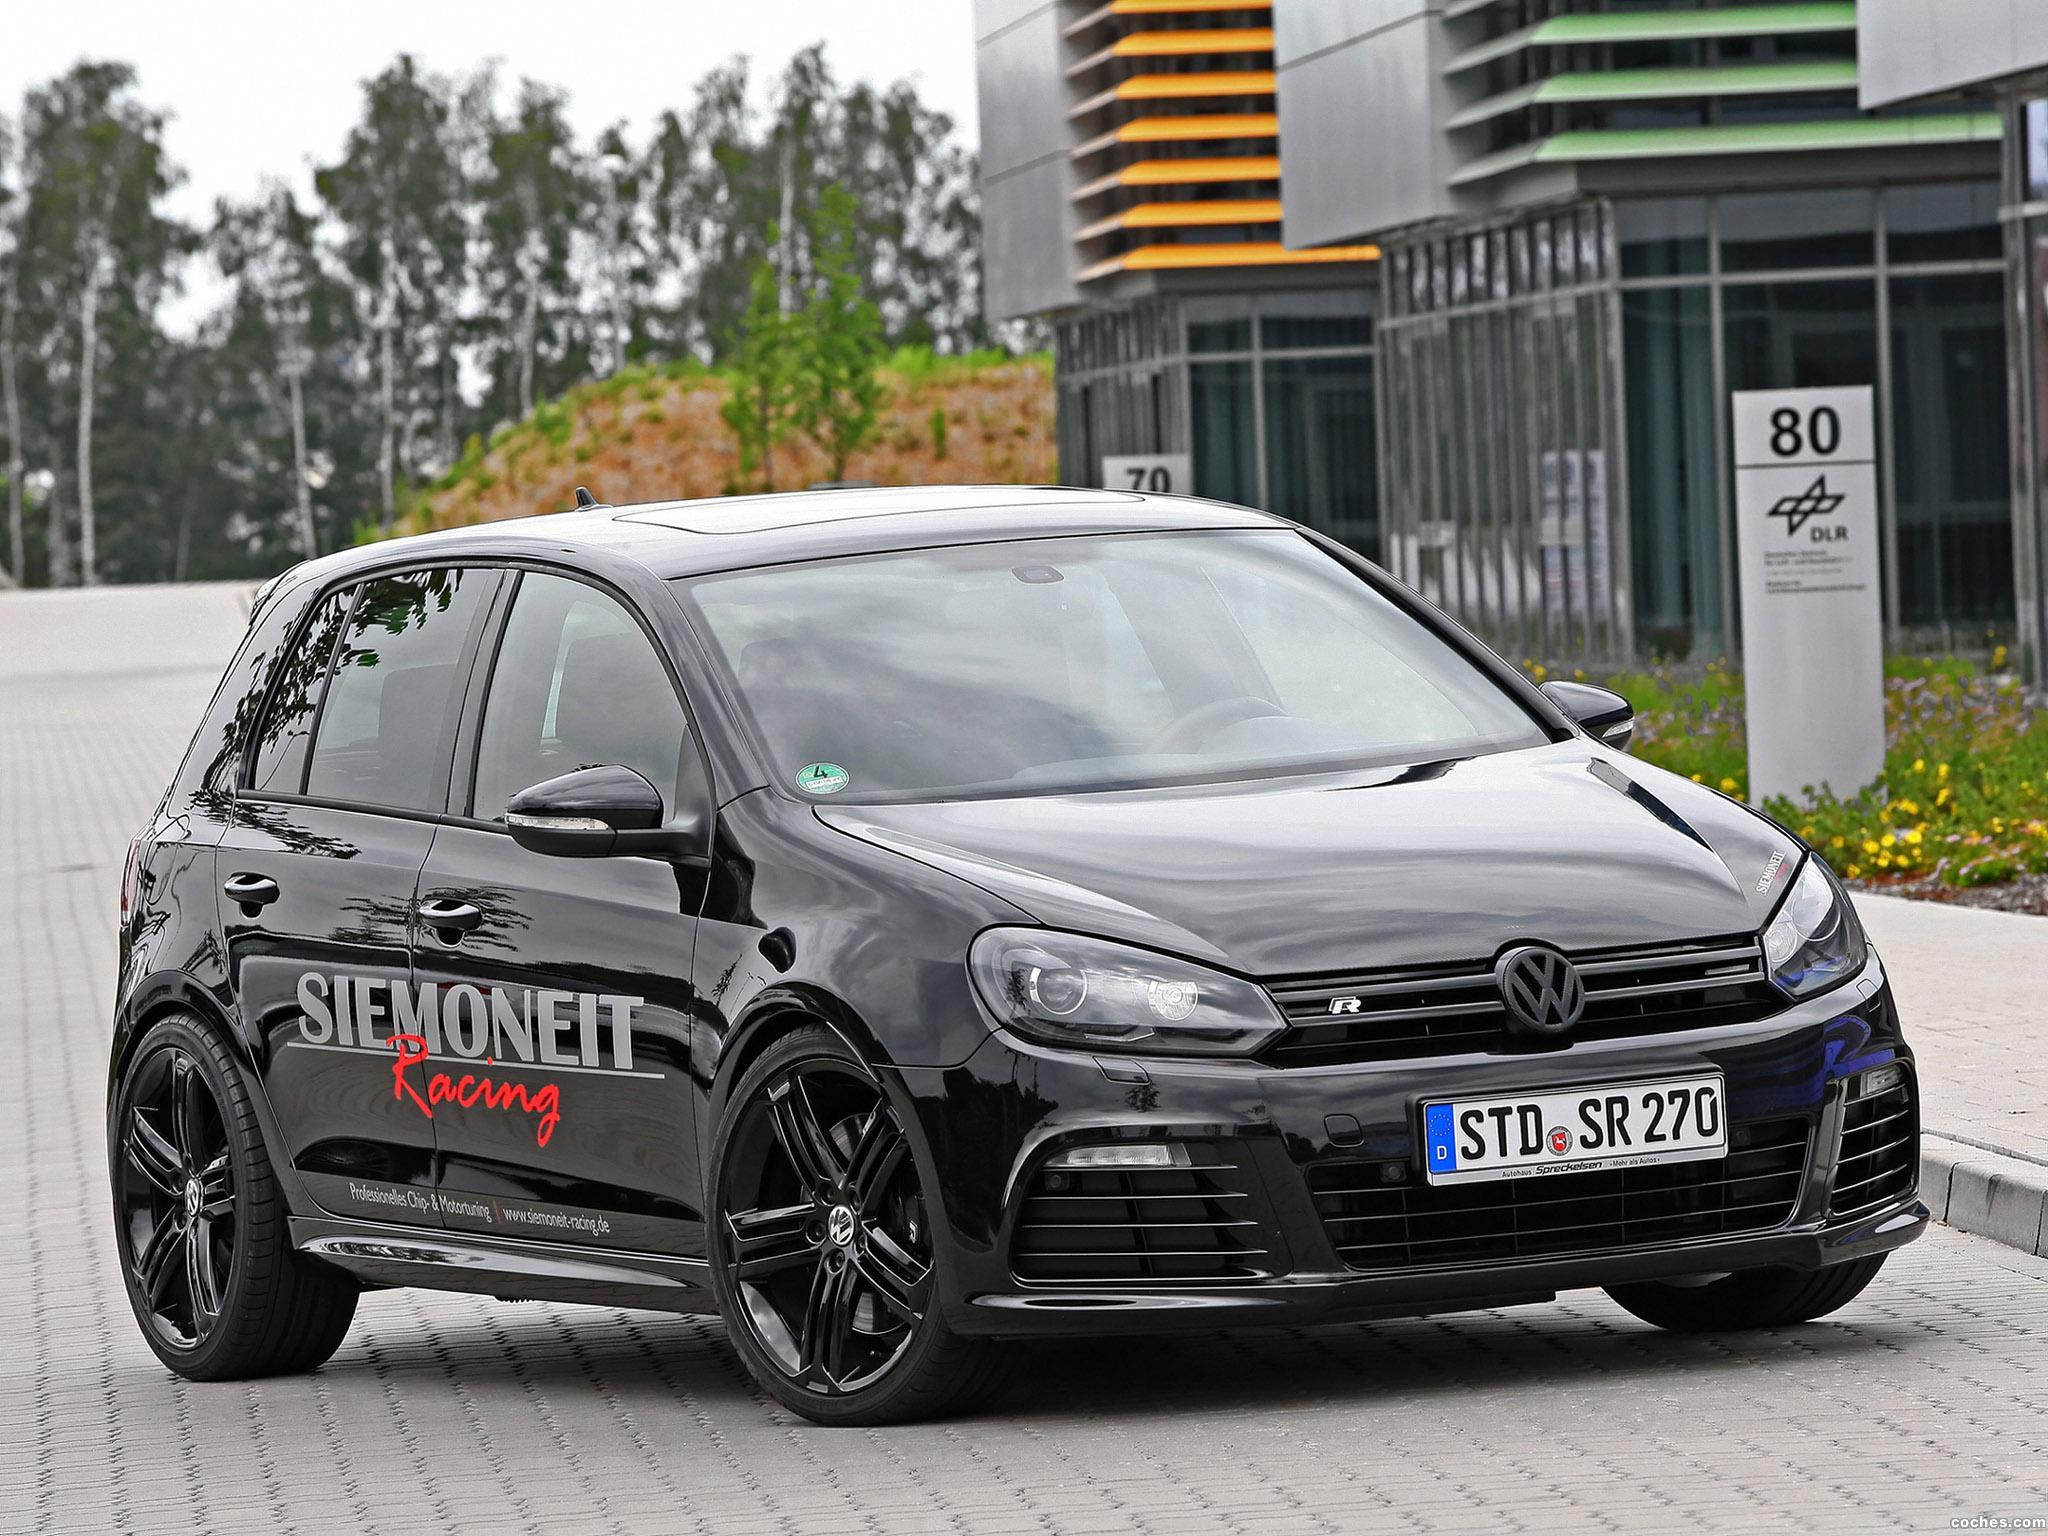 Foto 0 de Volkswagen Siemoneit Golf R Racing The Black Pearl 2011